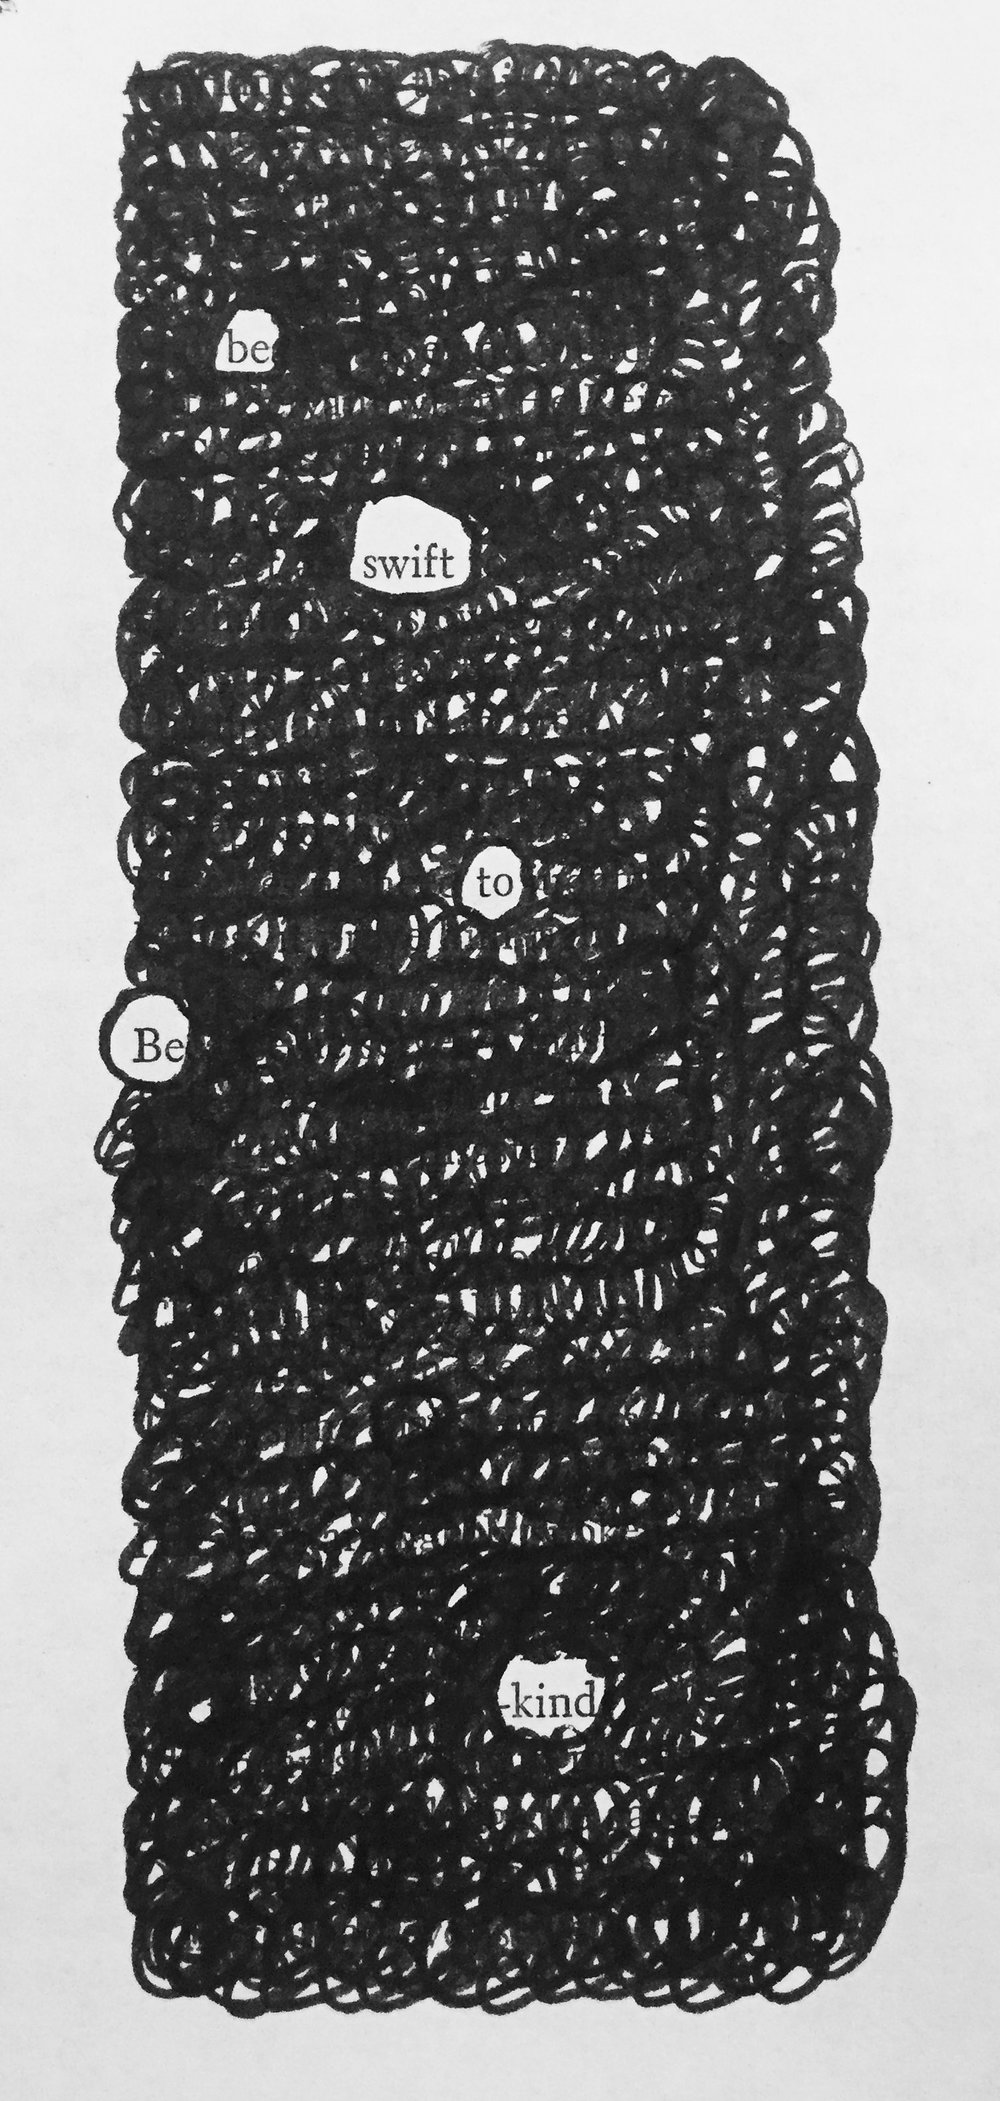 swift — a blackout poem by drew myron